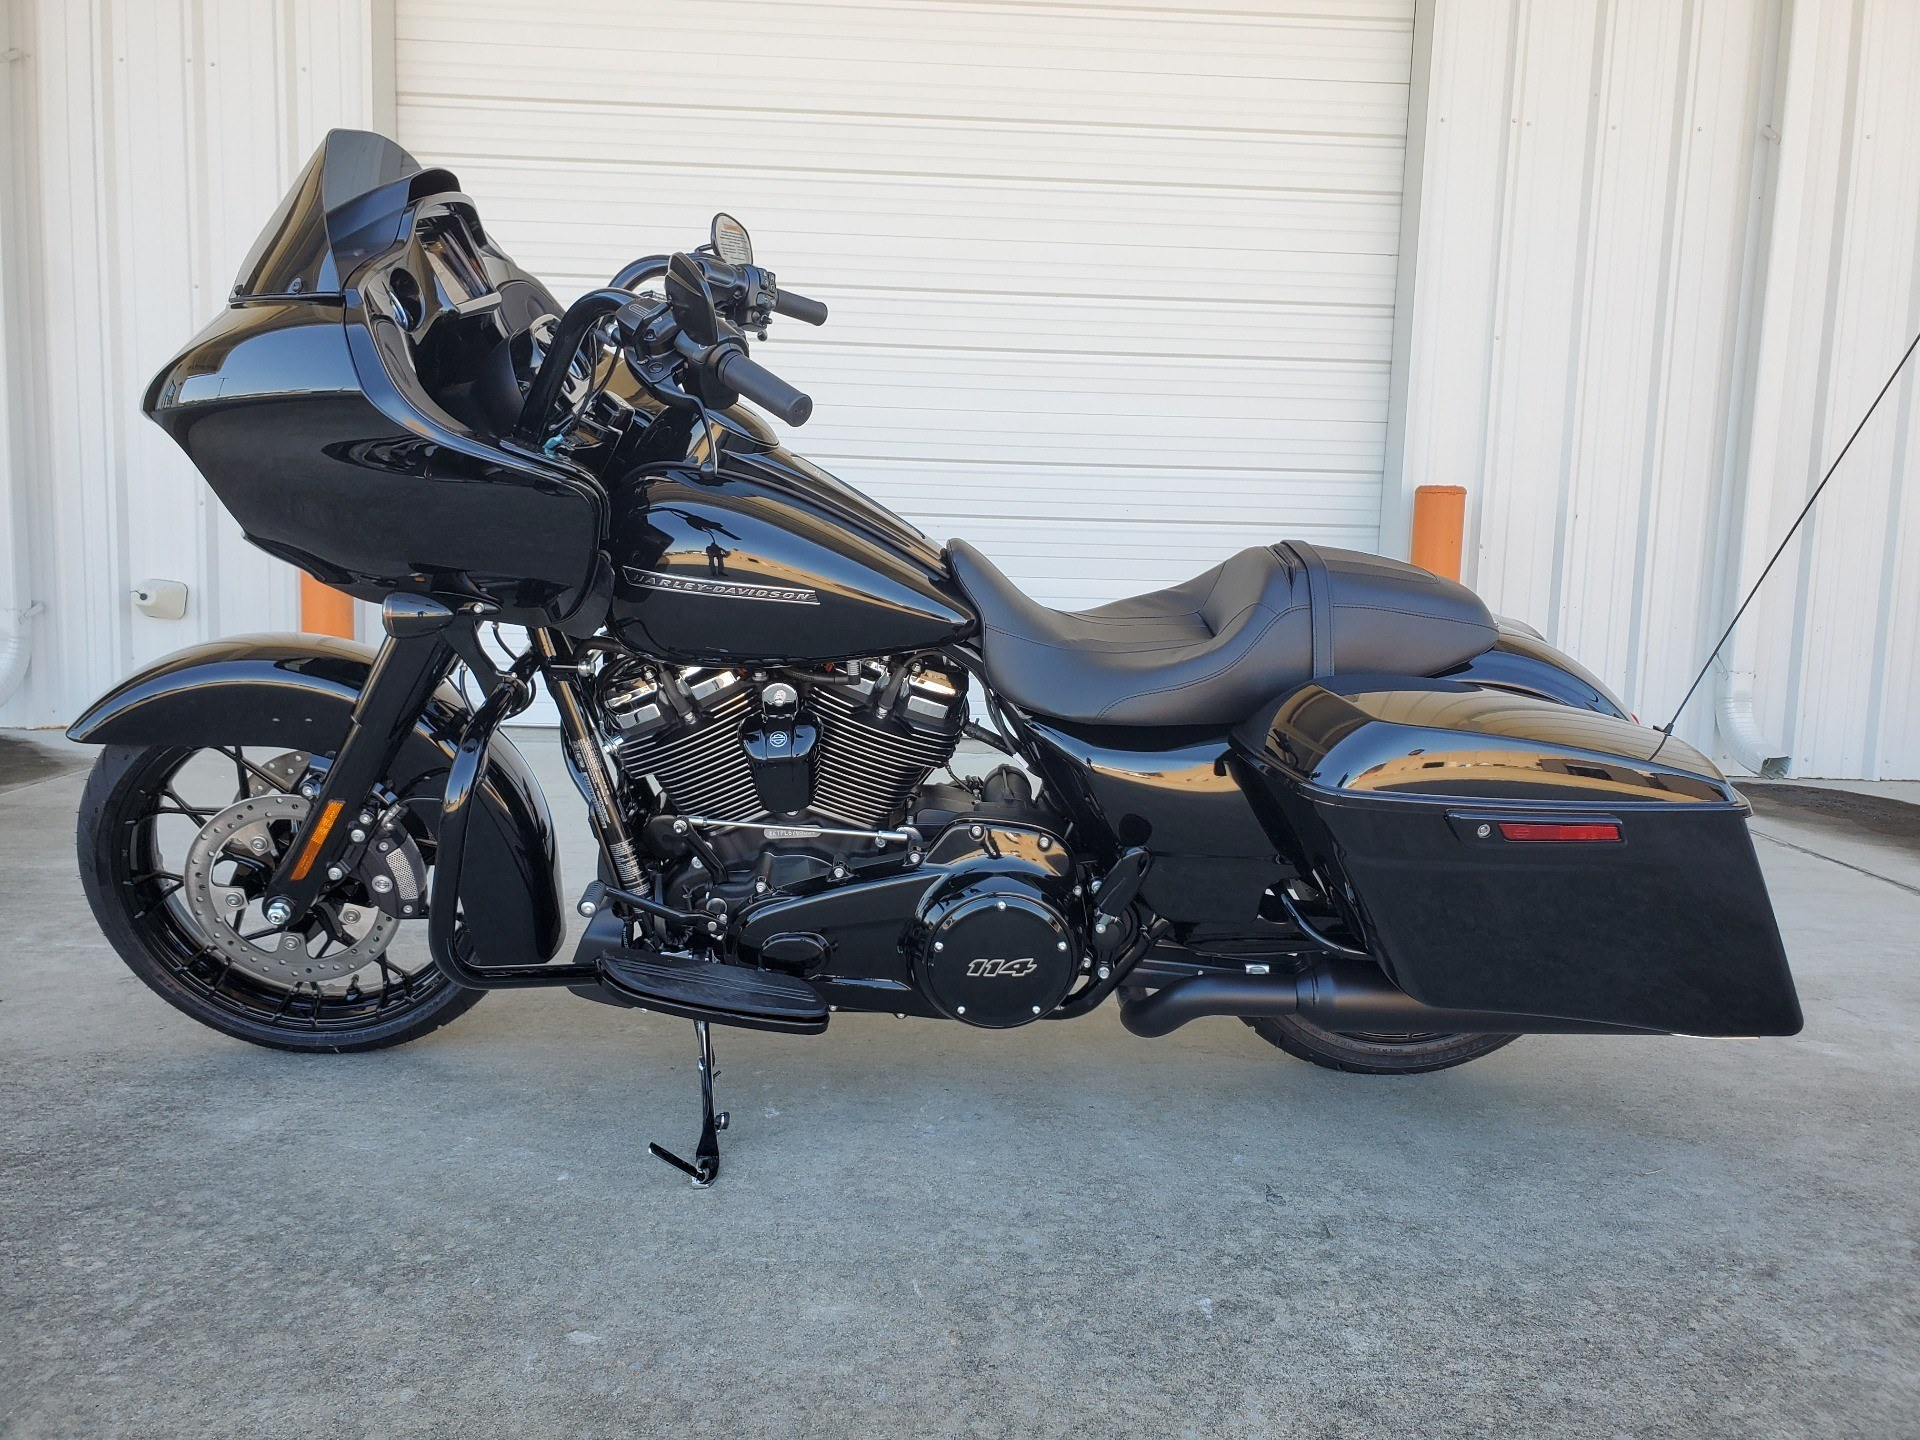 2020 Harley Road Glide Special Vivid Black - Photo 2